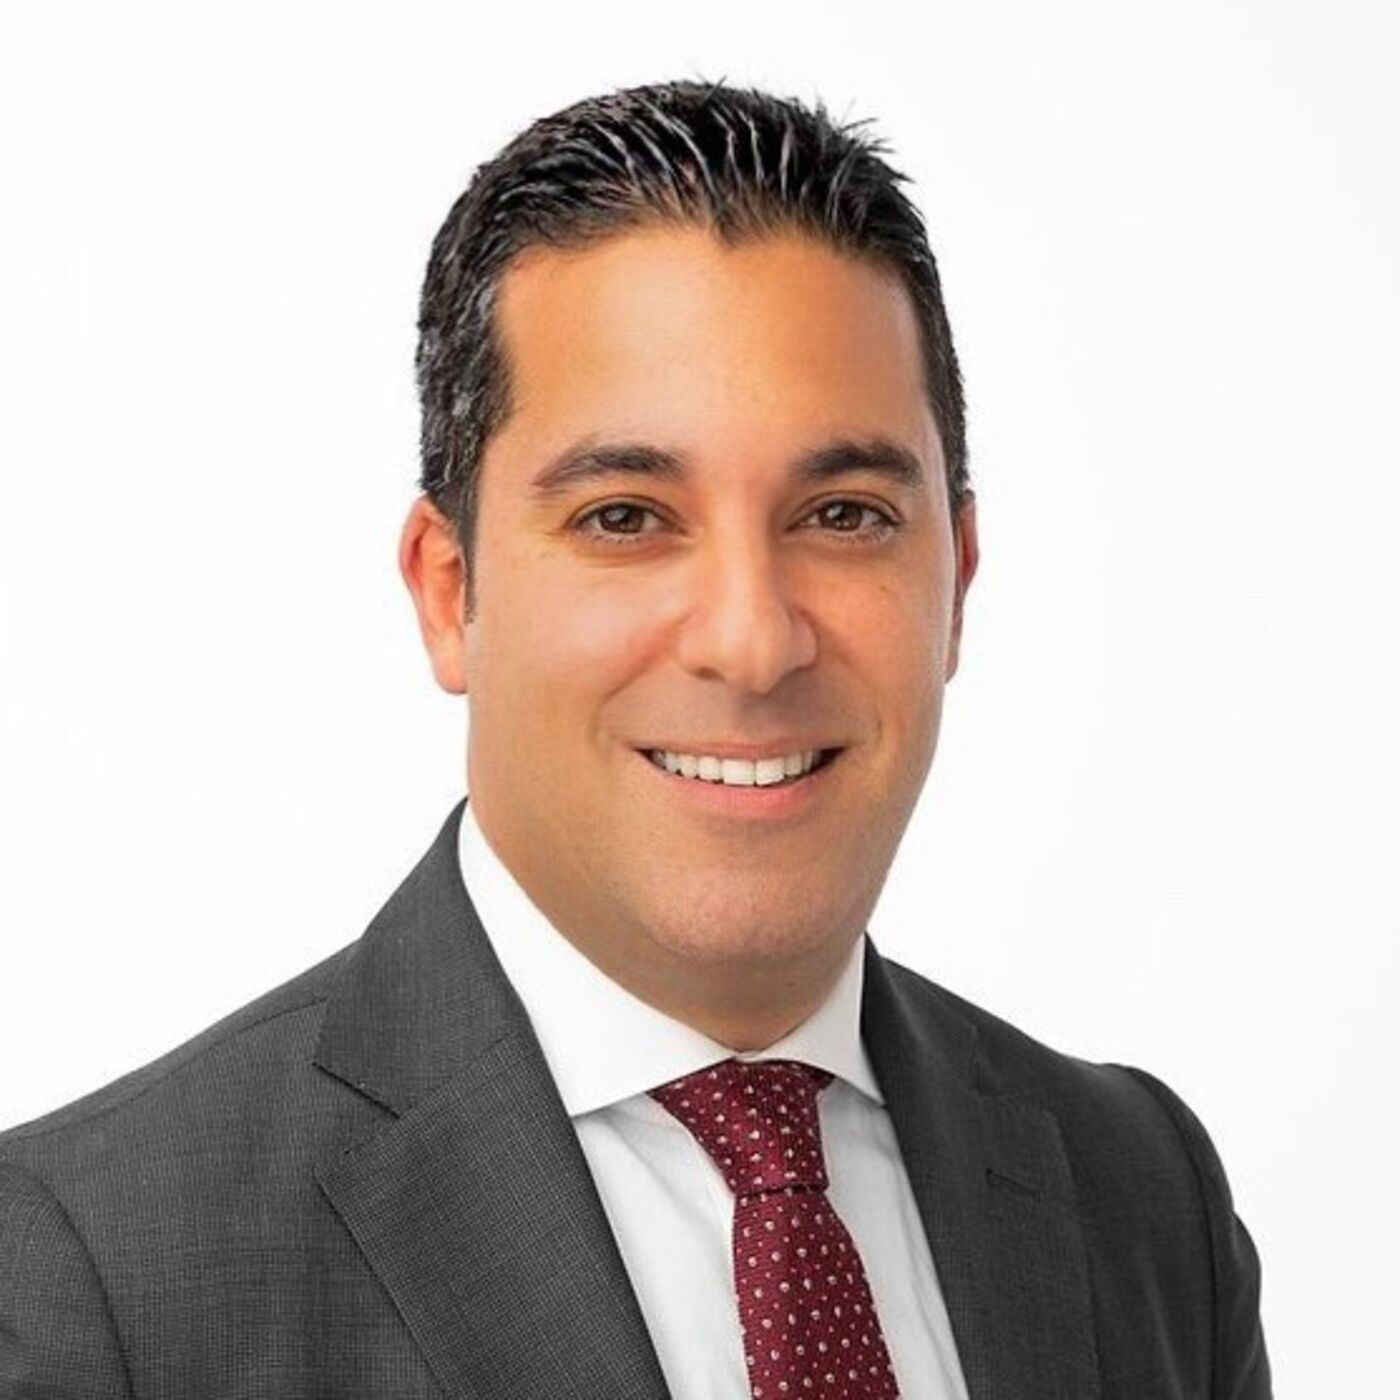 #108: Hussein Wehbe Chief Executive Officer of fetchr